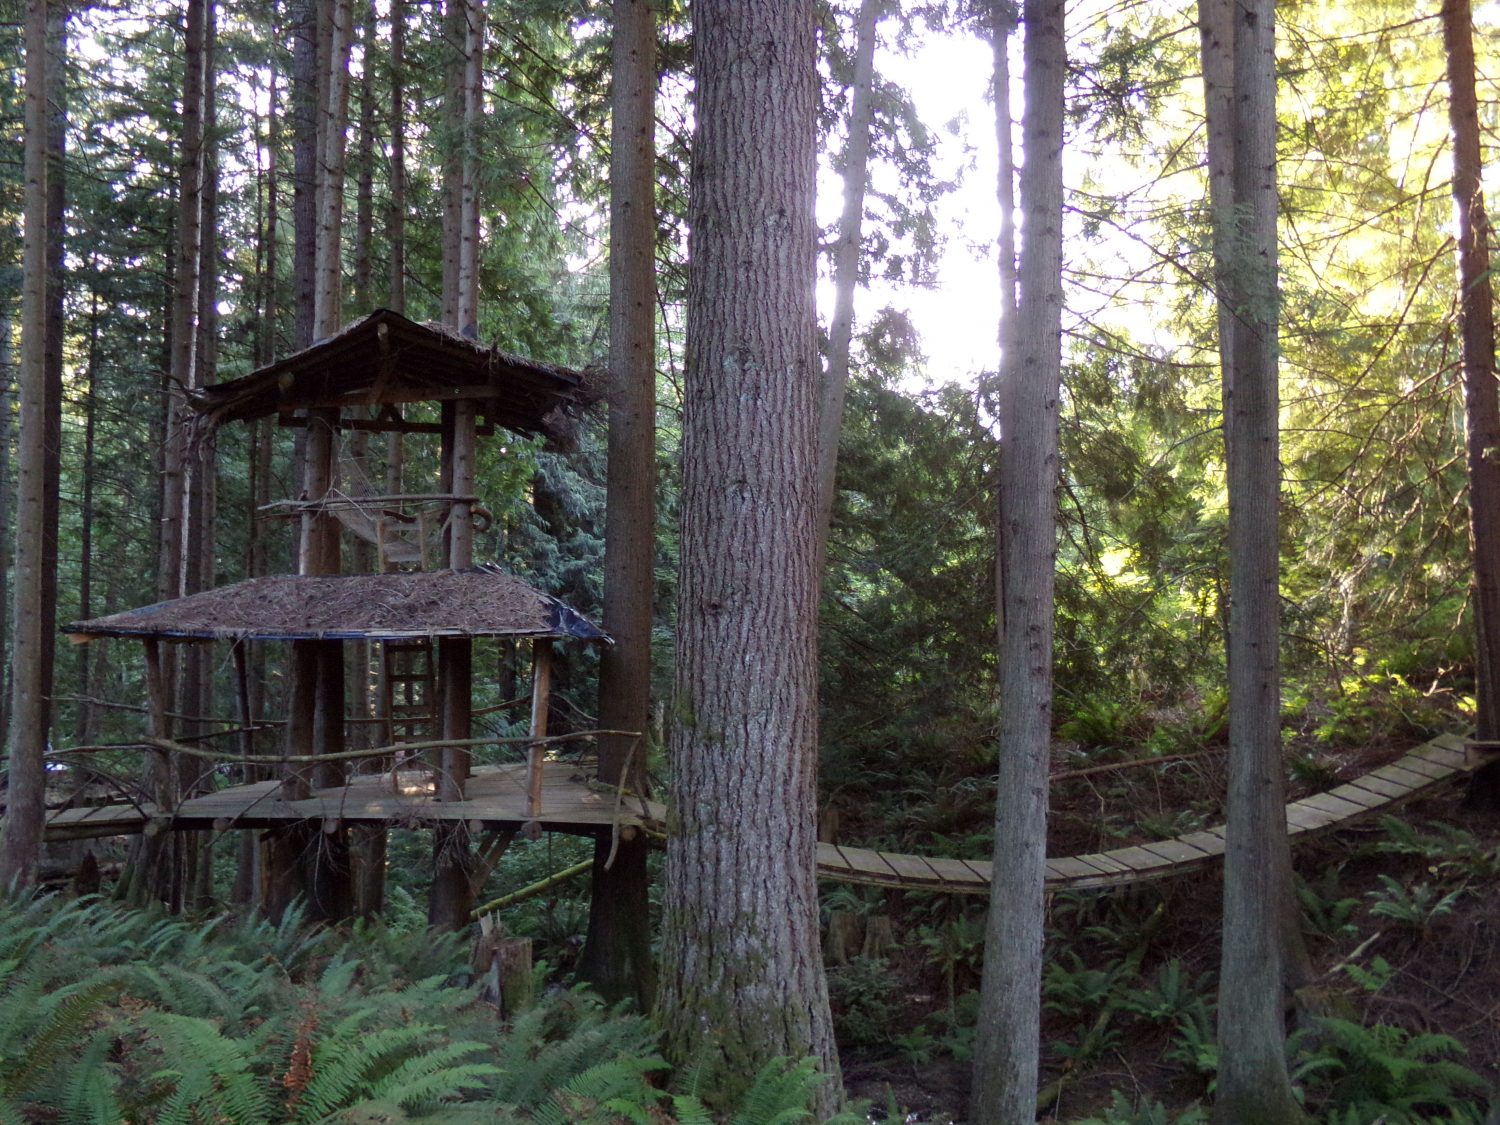 Treehouse with a suspension bridge